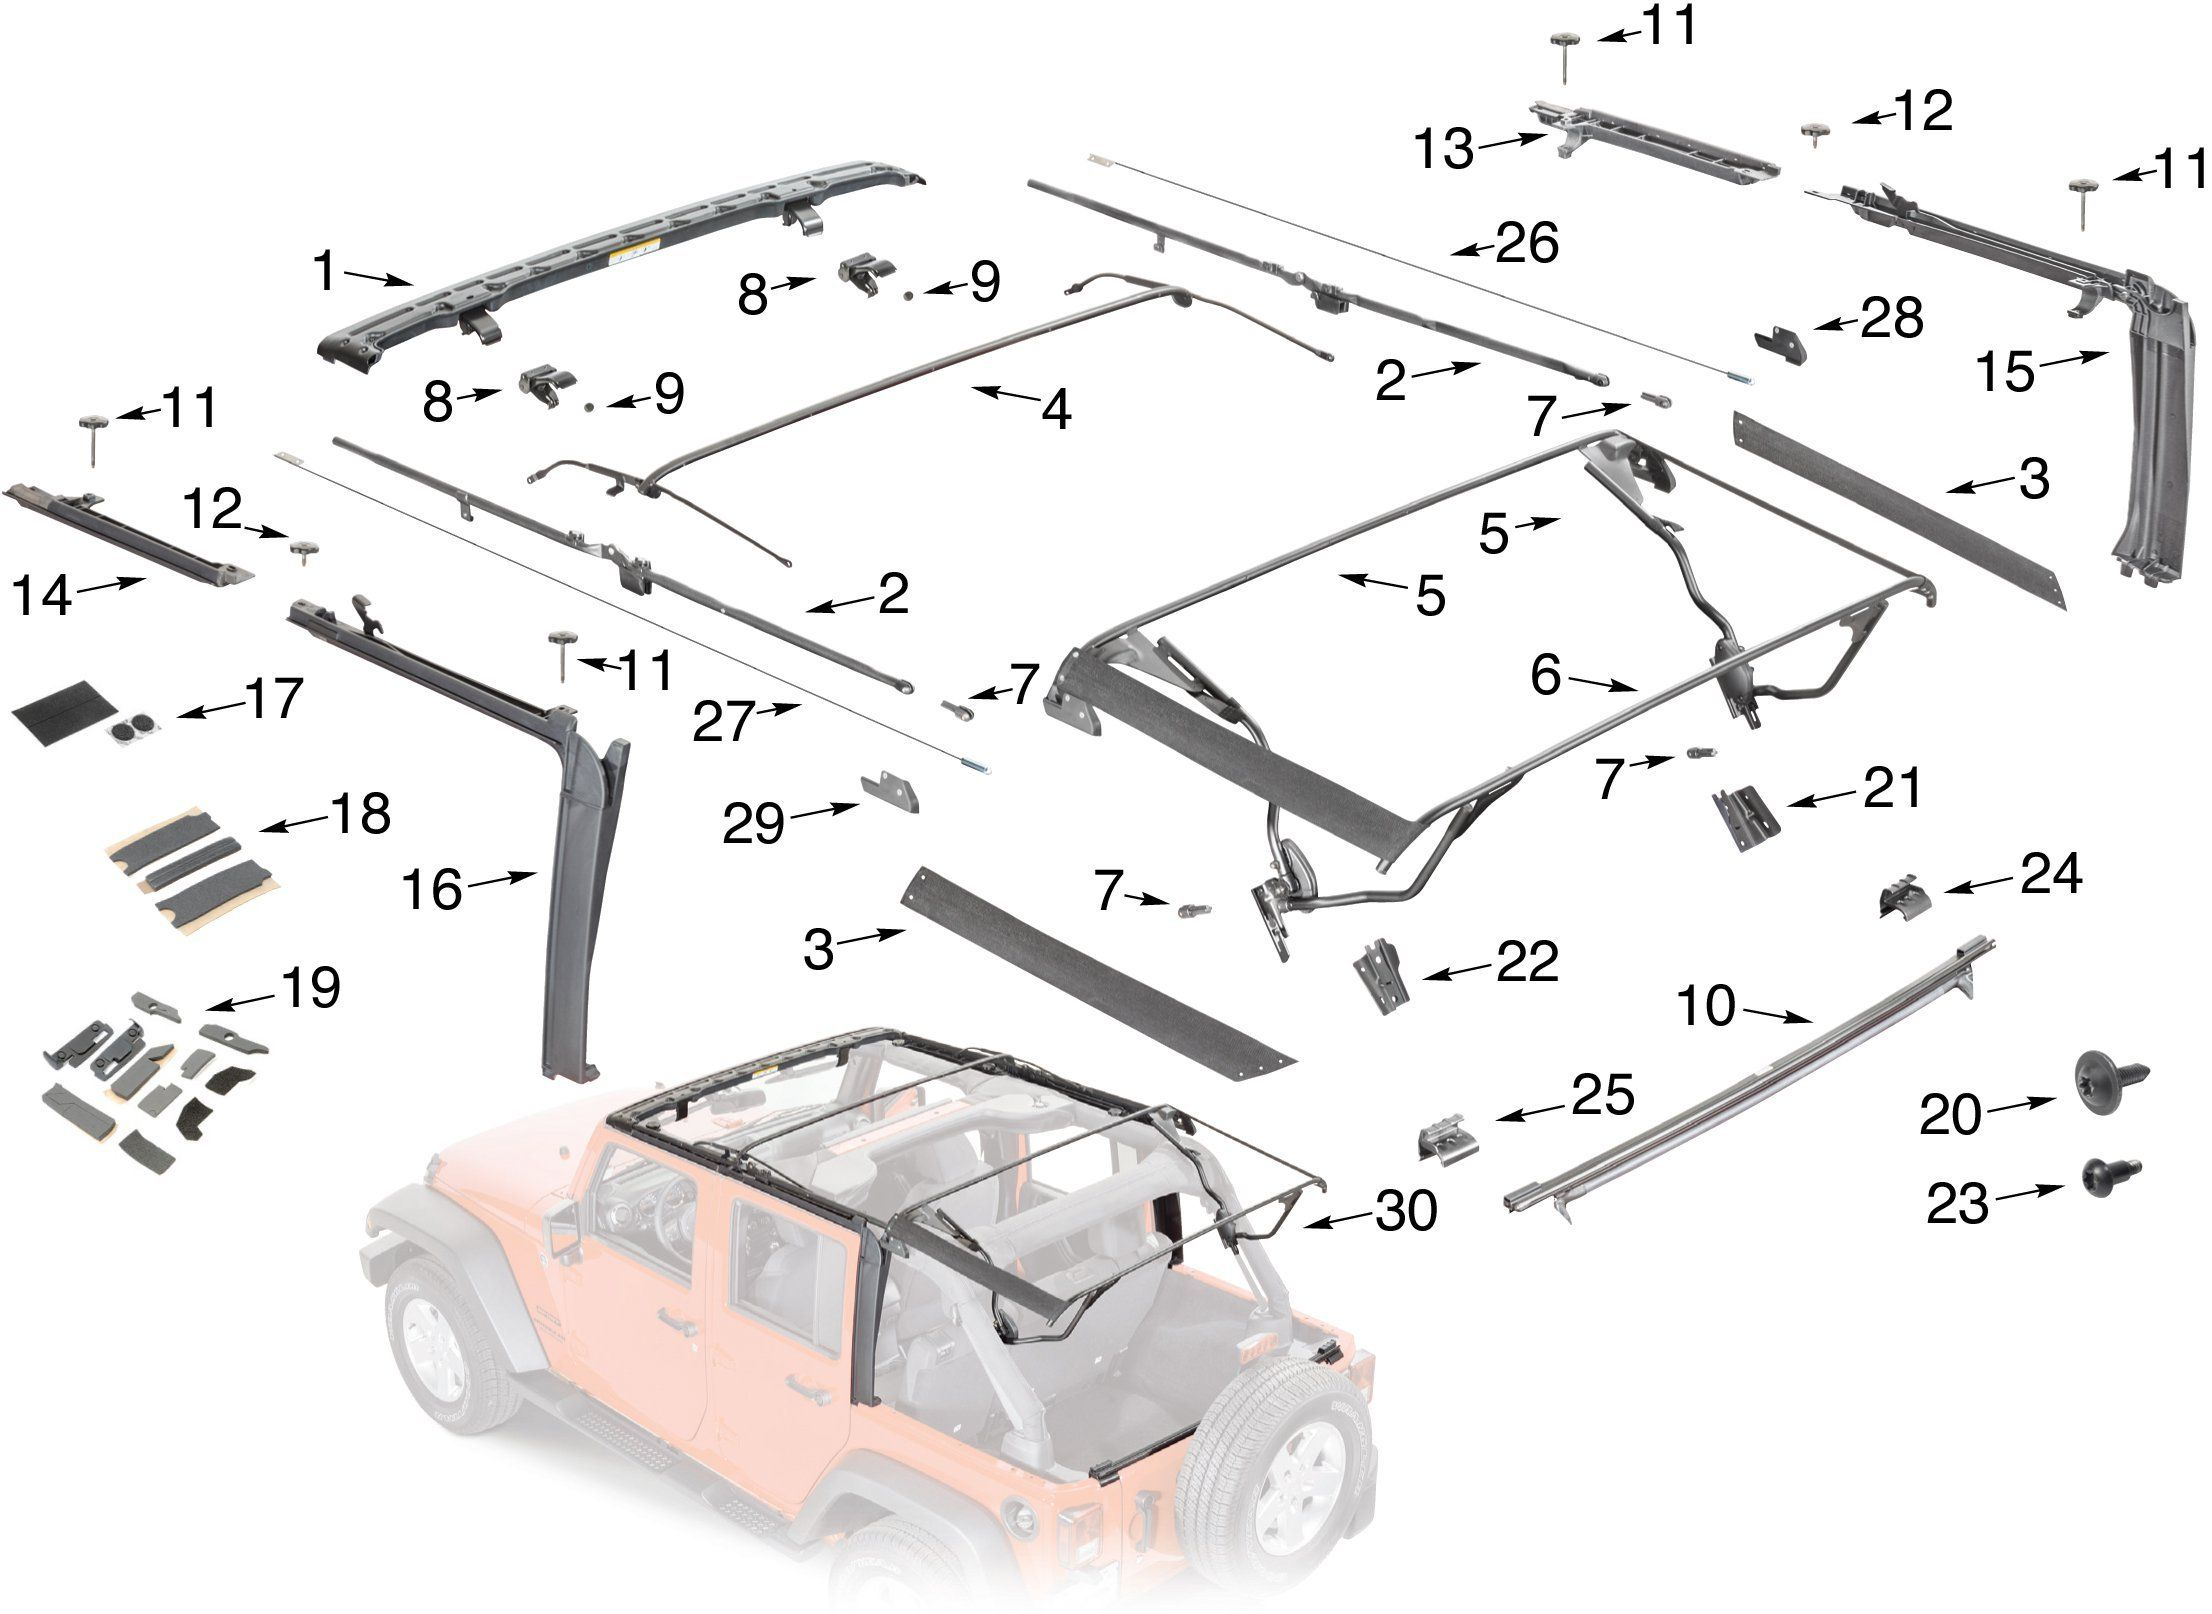 hight resolution of great jeep wrangler soft top parts list